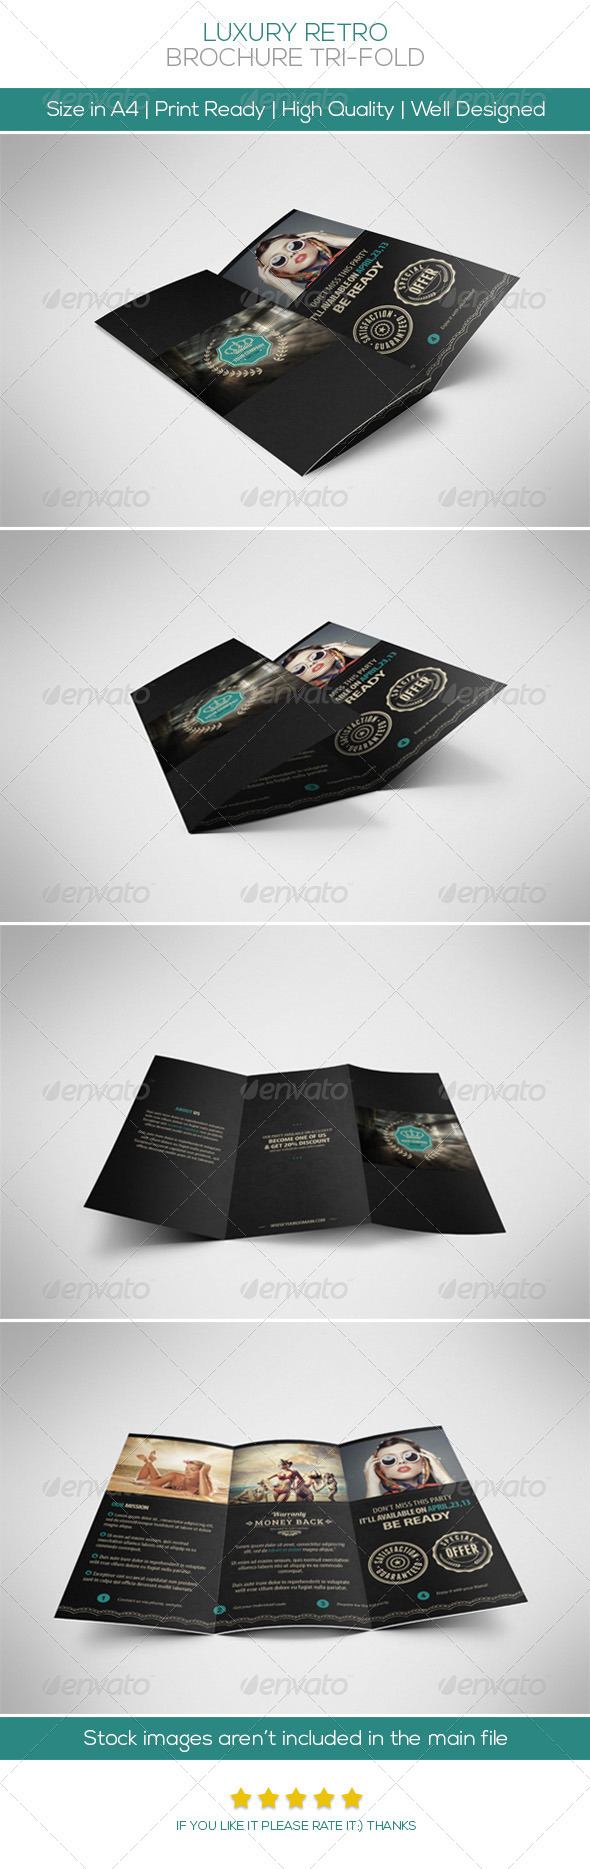 Luxury Retro Brochure Tri-fold - Brochures Print Templates